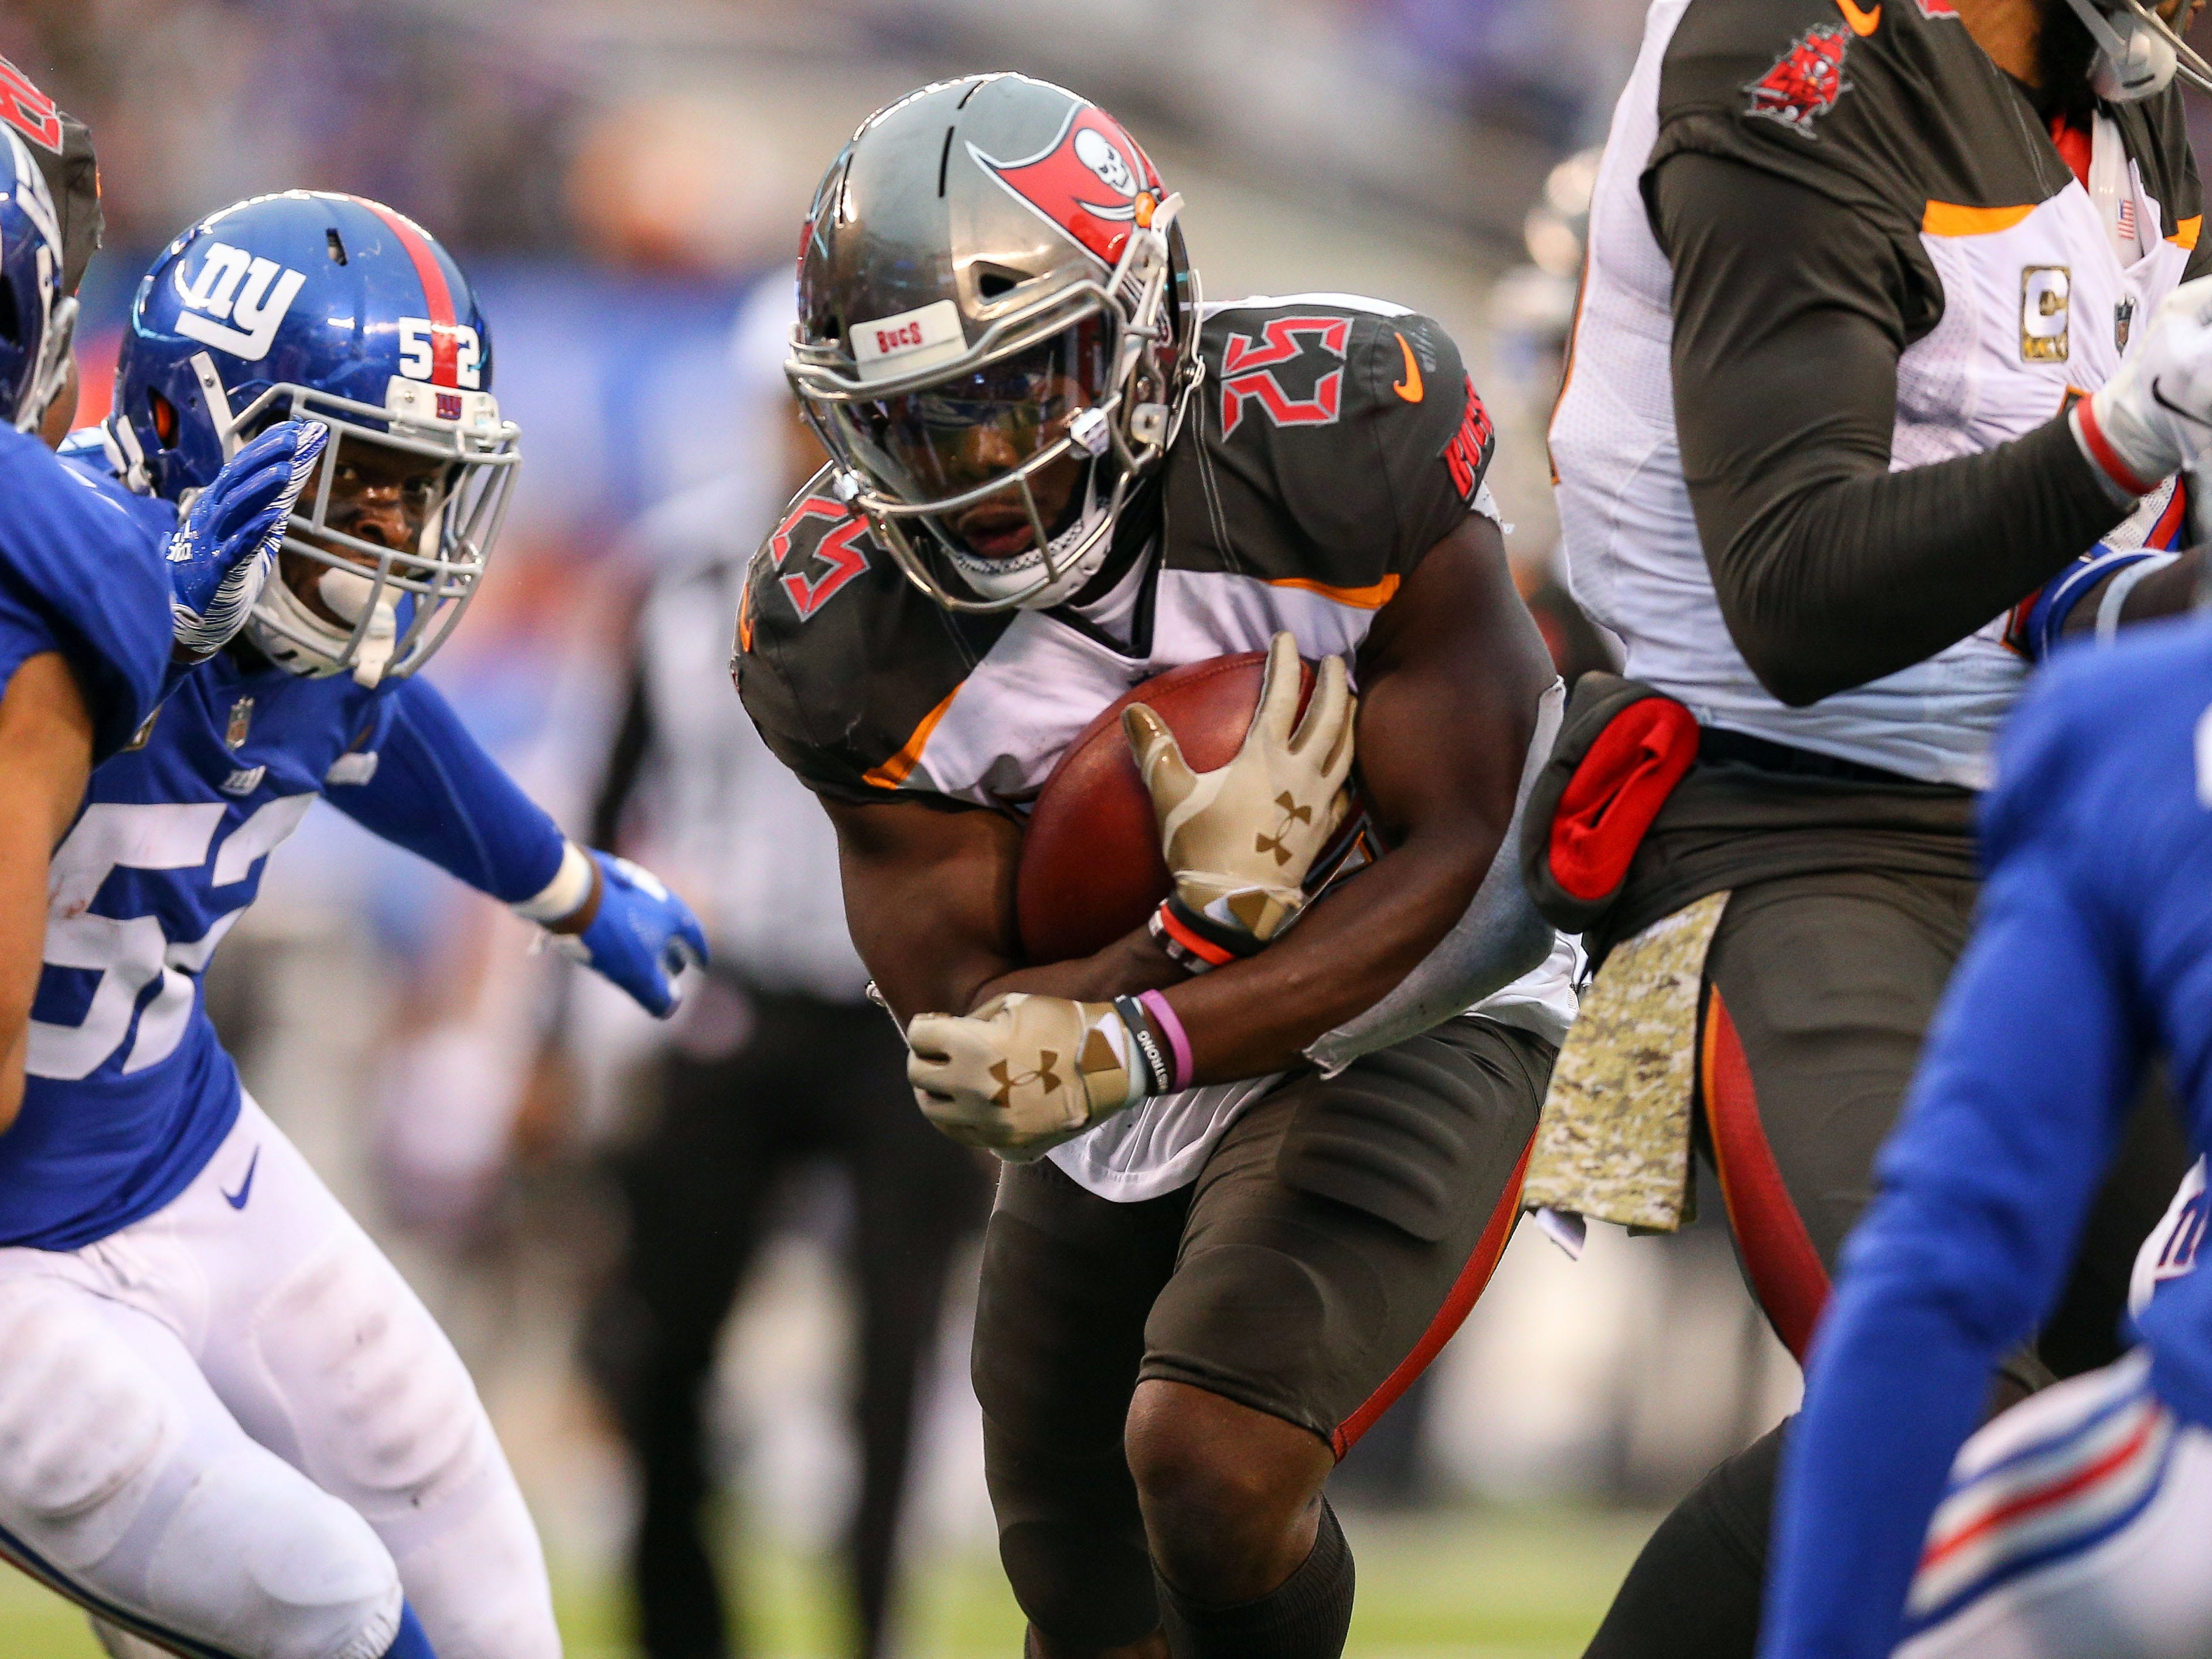 28. Buccaneers (23): If football games were won between 20-yard lines, these Bucs might be considered revolutionary. (Uh, guys, they're not won between the 20s.)